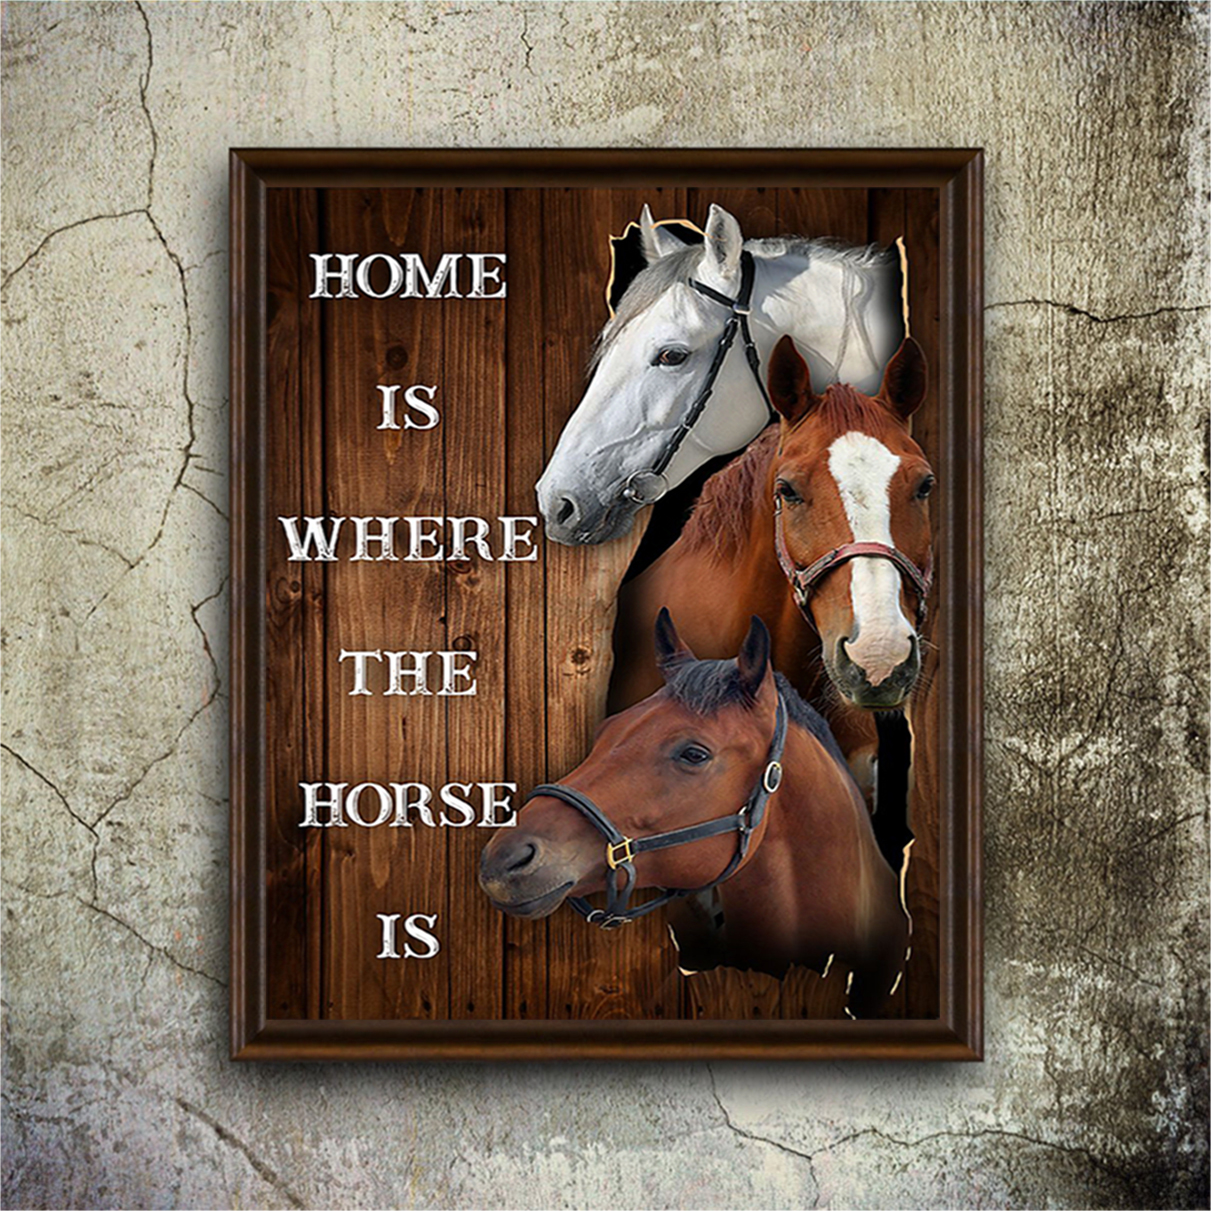 Home is where the horse is poster A2